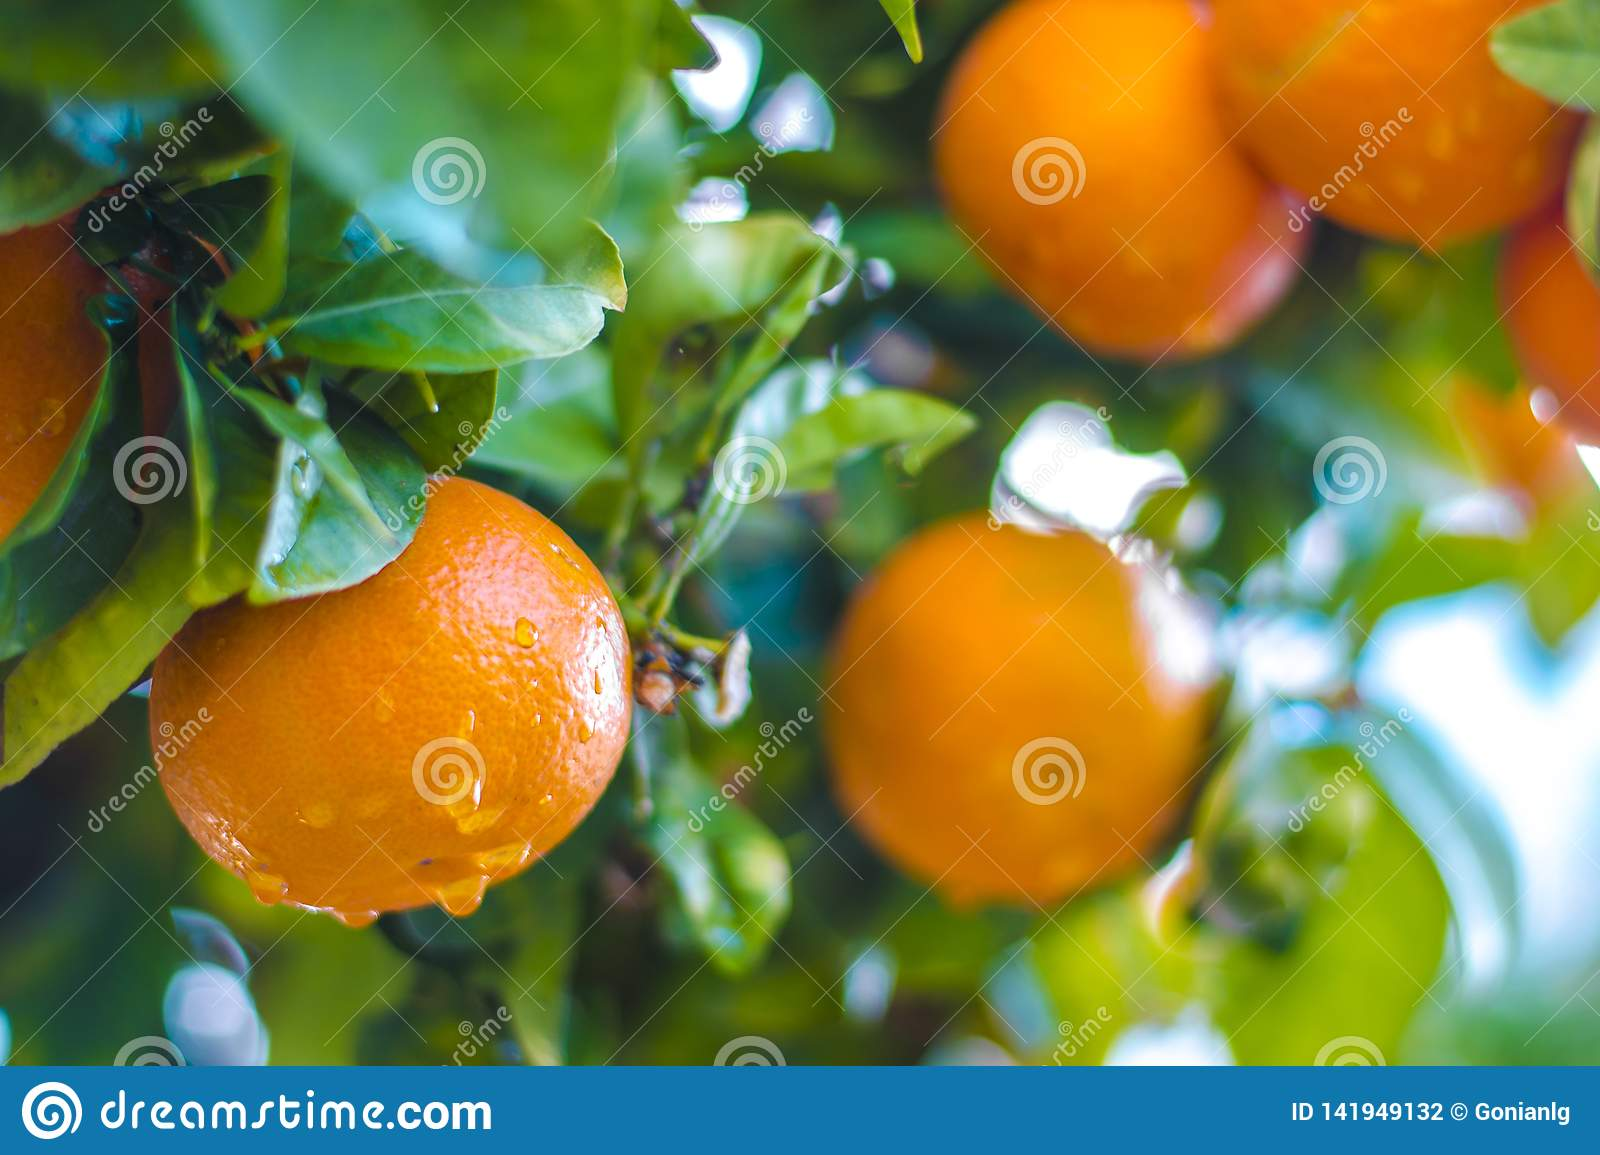 Ripe tangerines on a tree branch. Blue sky on the background. Citrus background